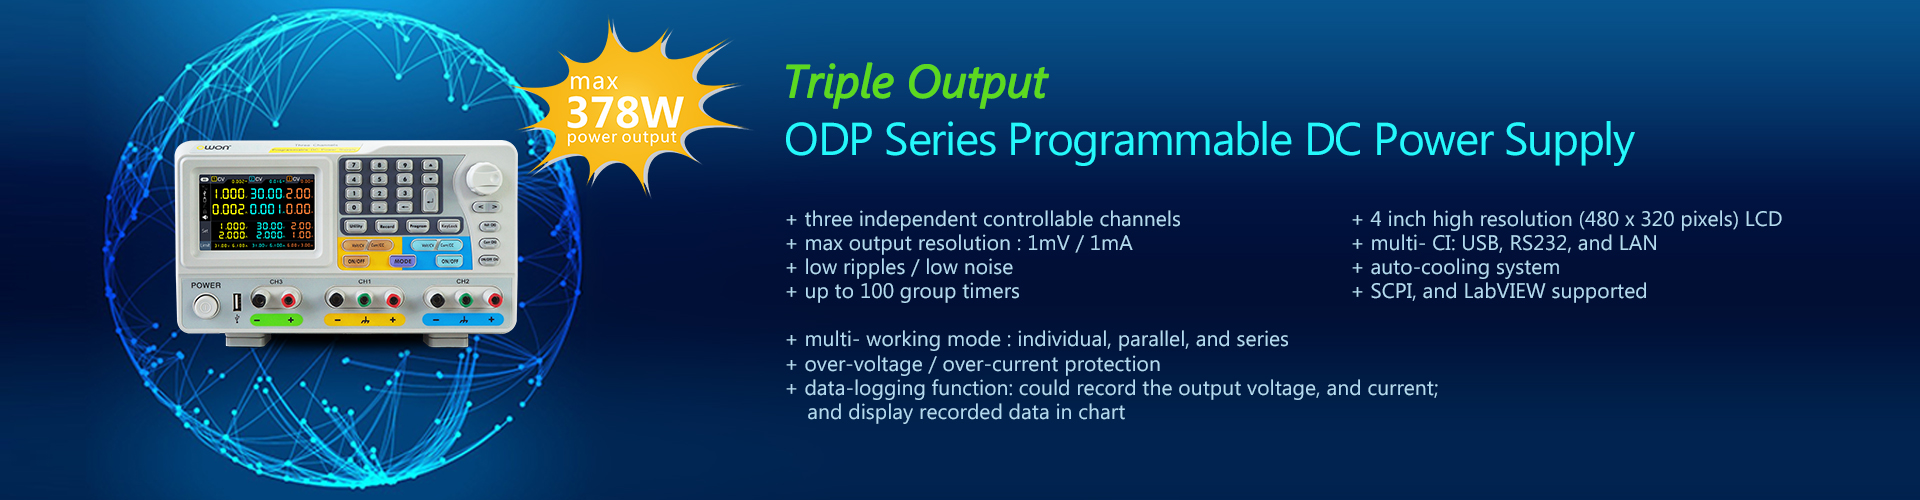 Triple Output Programmable DC Power Supply